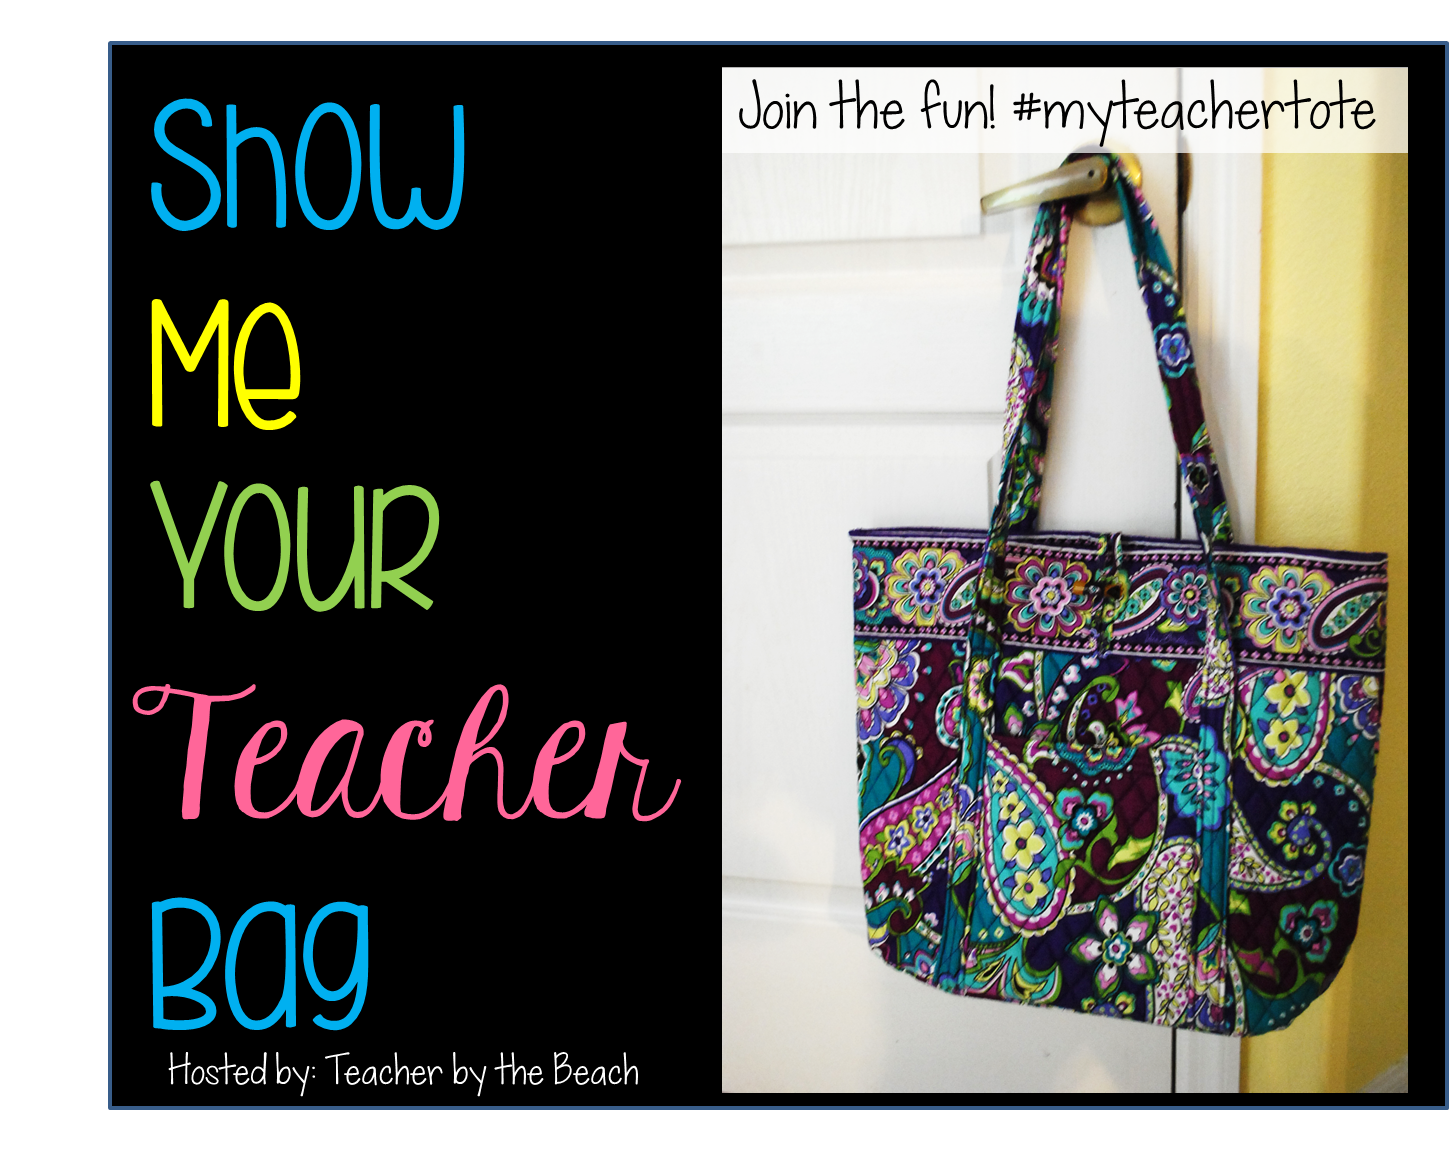 http://theteacherscauldron.blogspot.com/2014/07/show-me-your-teacher-tote-linky.html